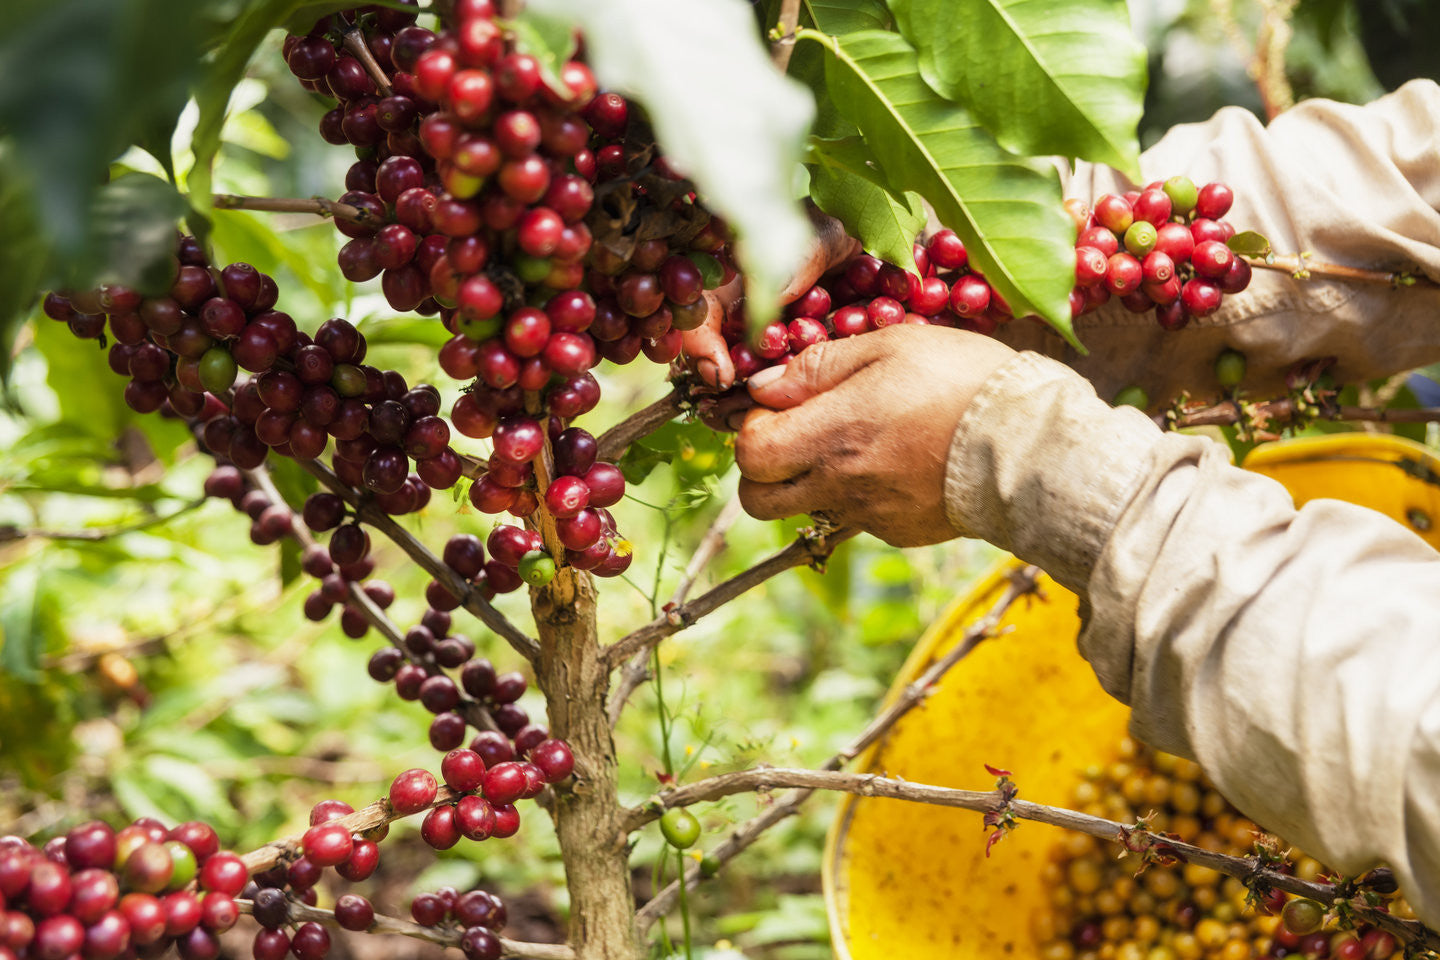 Today we look at Colombian FNC coffee beans and what makes them great!